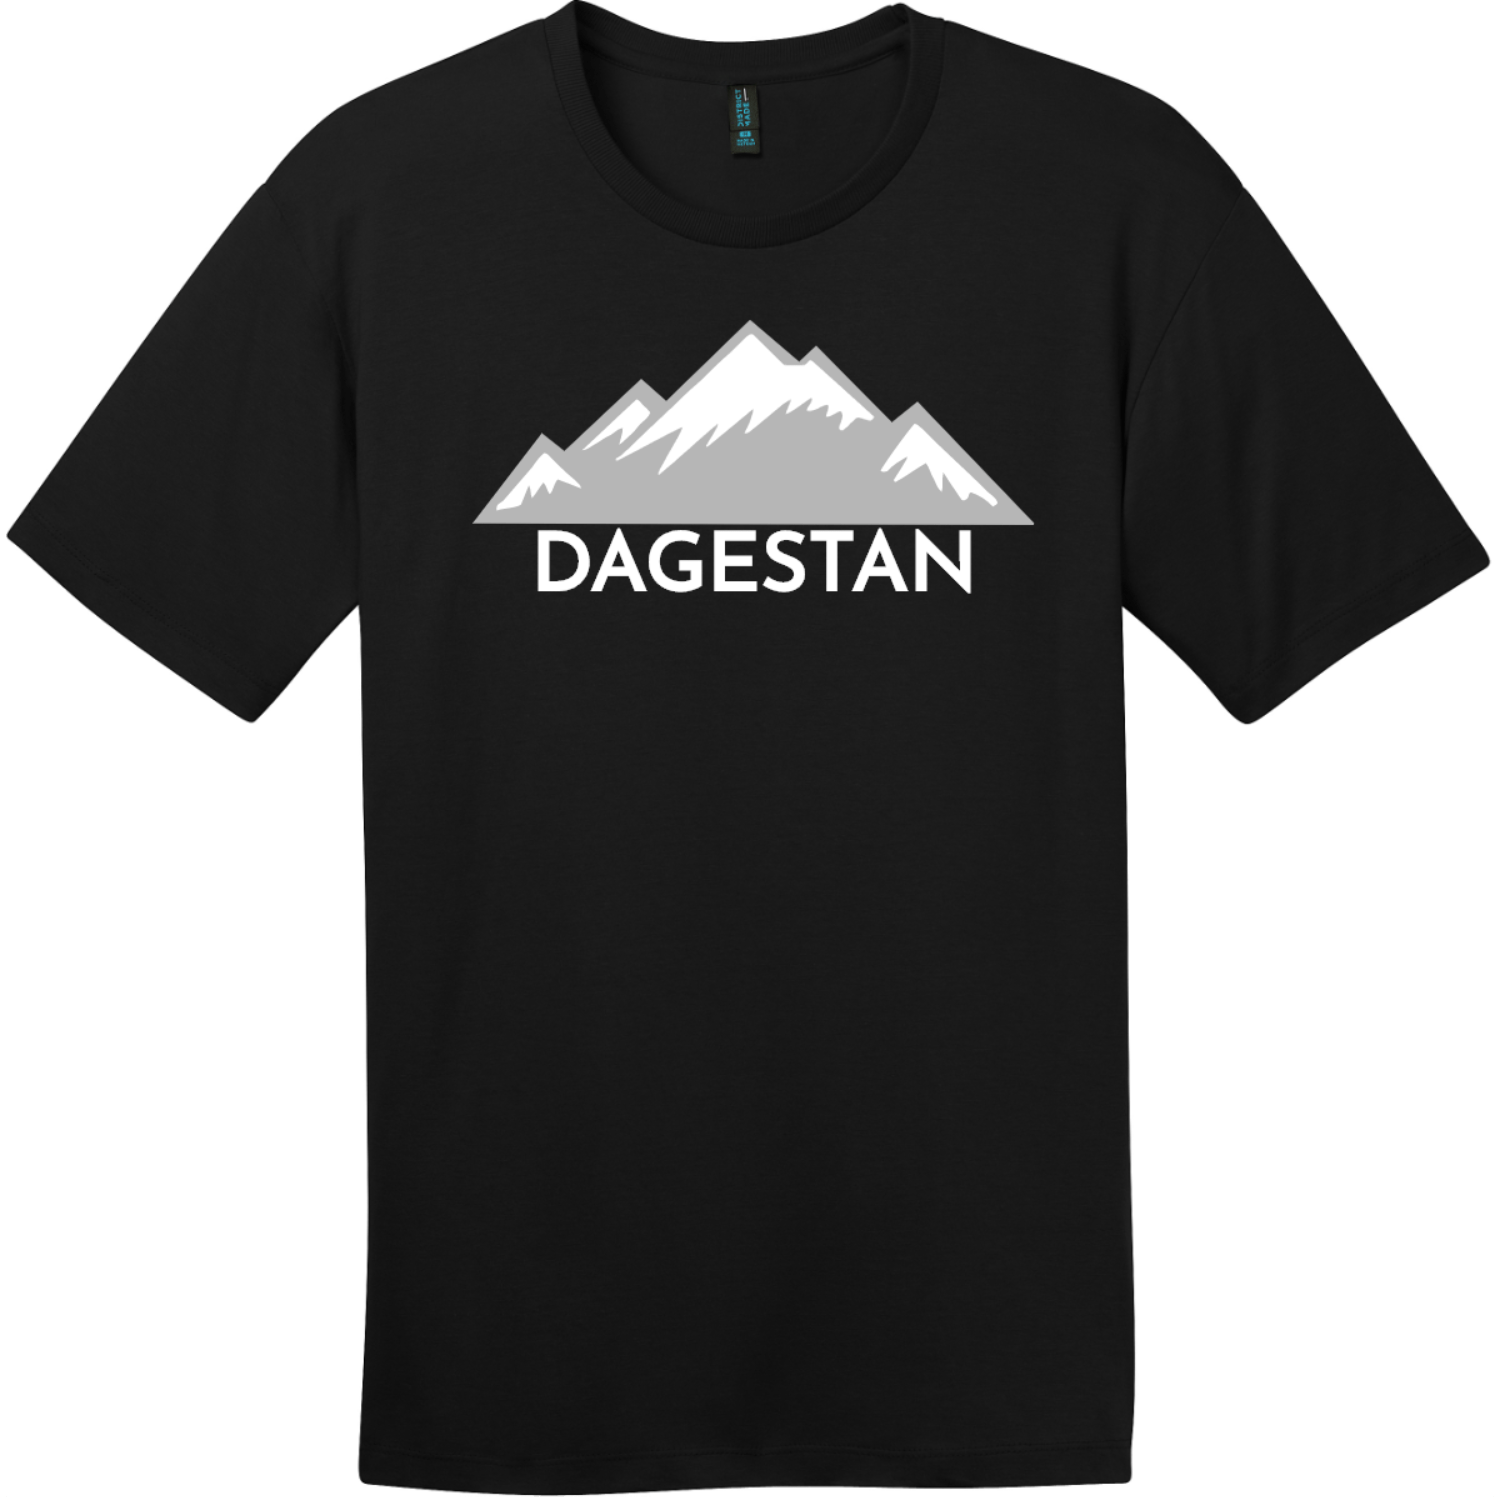 Dagestan Mountain T-Shirt Jet Black District Perfect Weight Tee DT104